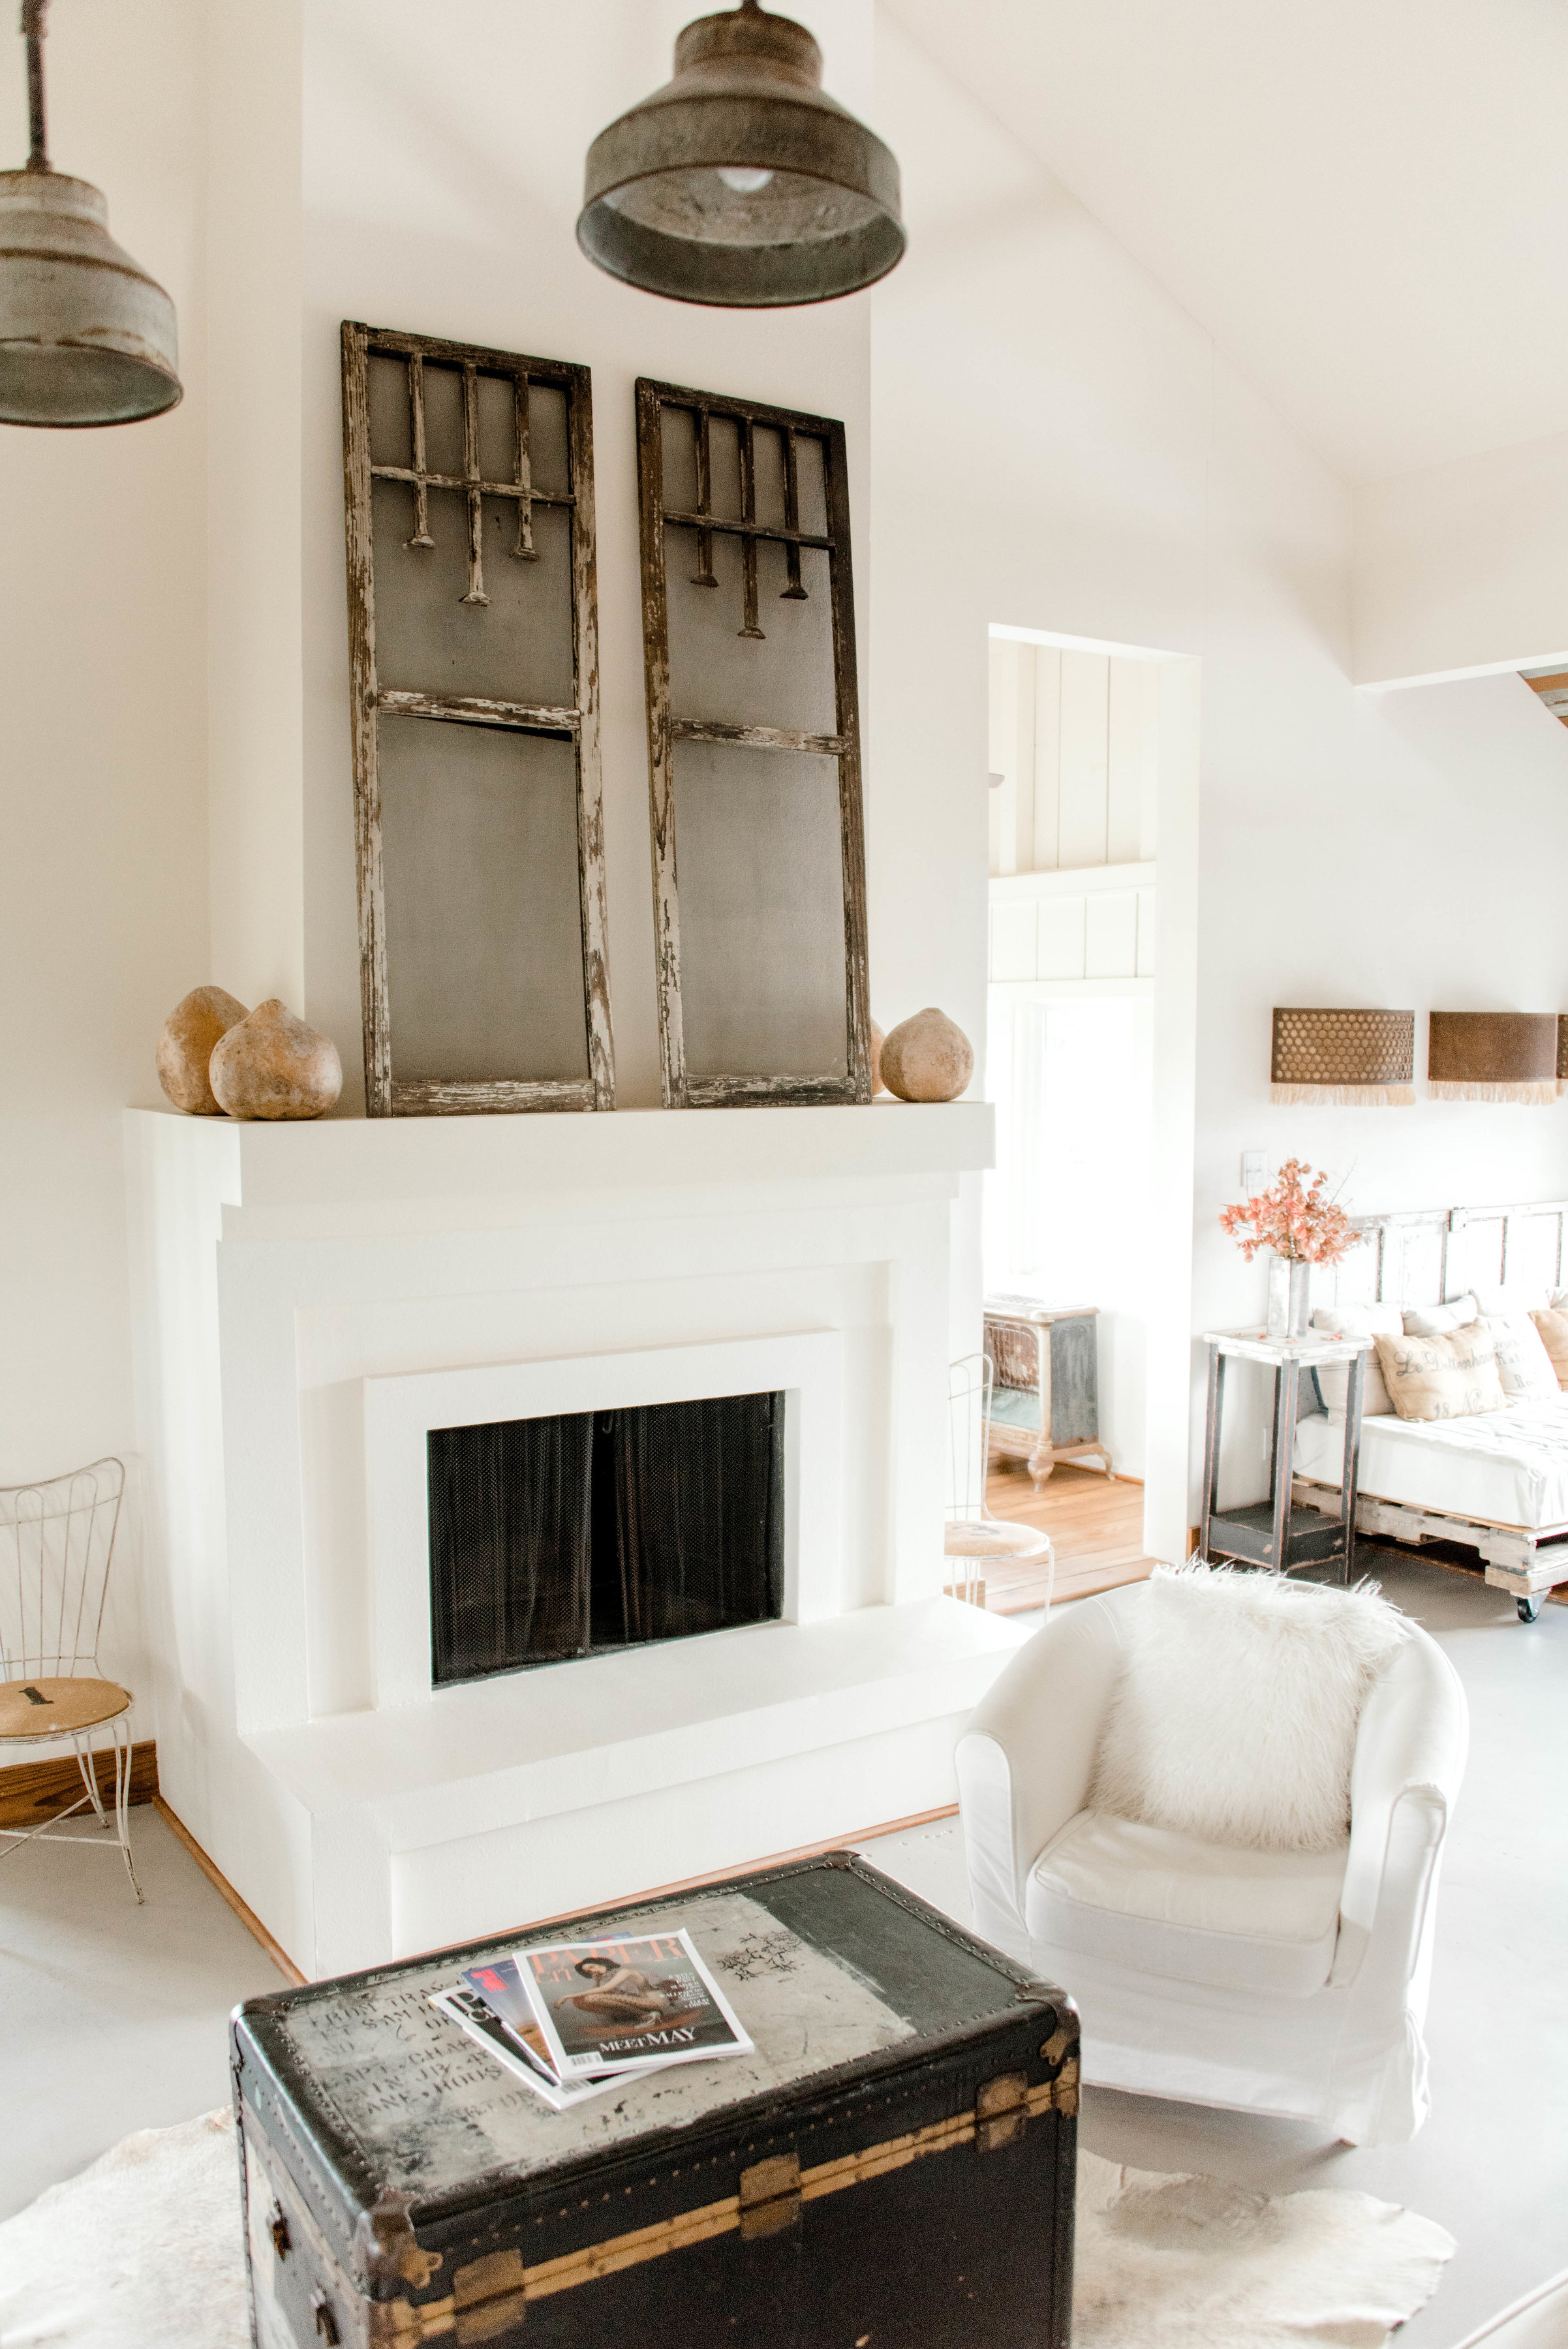 No. 1450 - The Vintage Round Top - My Domaine - Rustic Modern Farmhouse Retreat - Modern Fireplace - Vintage Decor